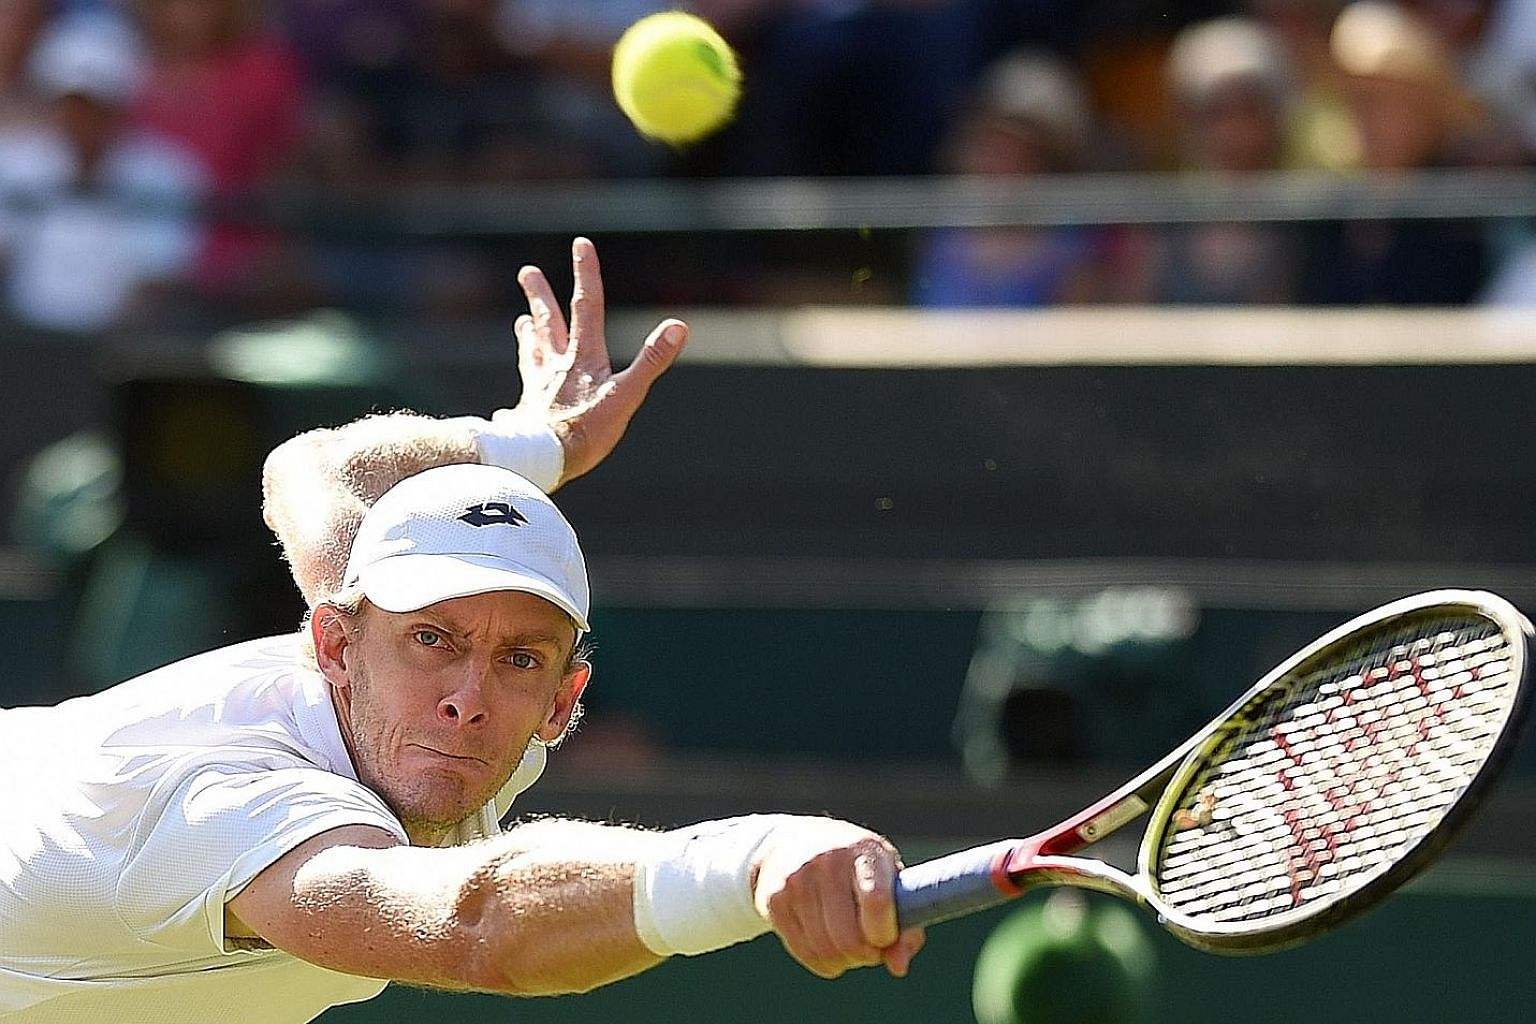 South African Kevin Anderson hitting a return against Roger Federer during his shock quarter-final win over the defending Wimbledon champion yesterday. He fought back from two sets down and even saved a match point in the third set.